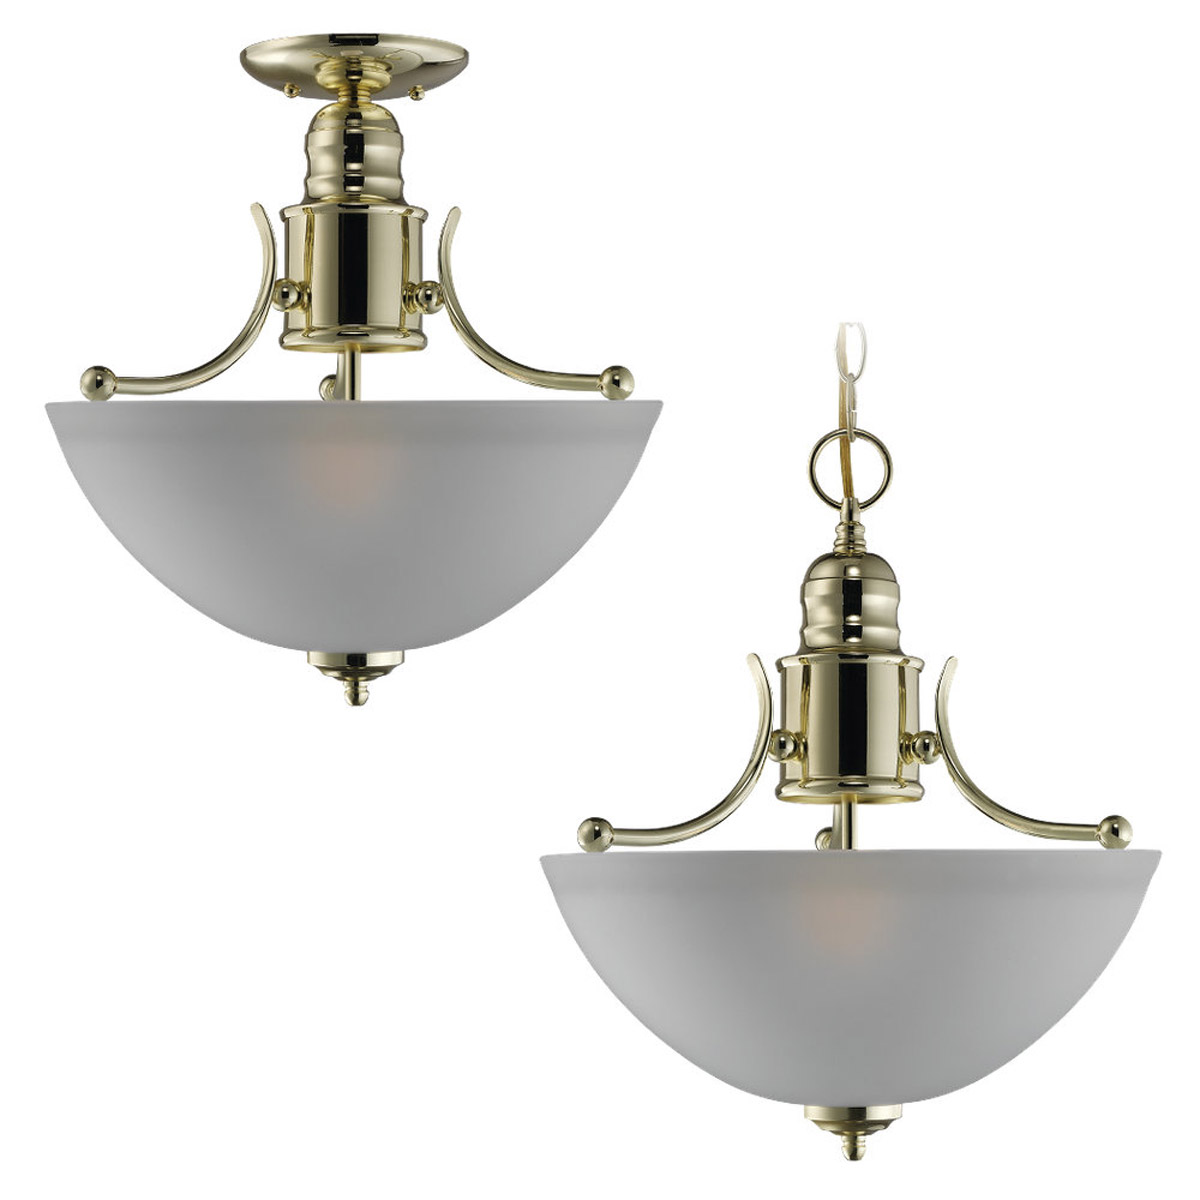 Sea Gull Lighting Linwood 2 Light Flush Mount in Polished Brass 77225-02